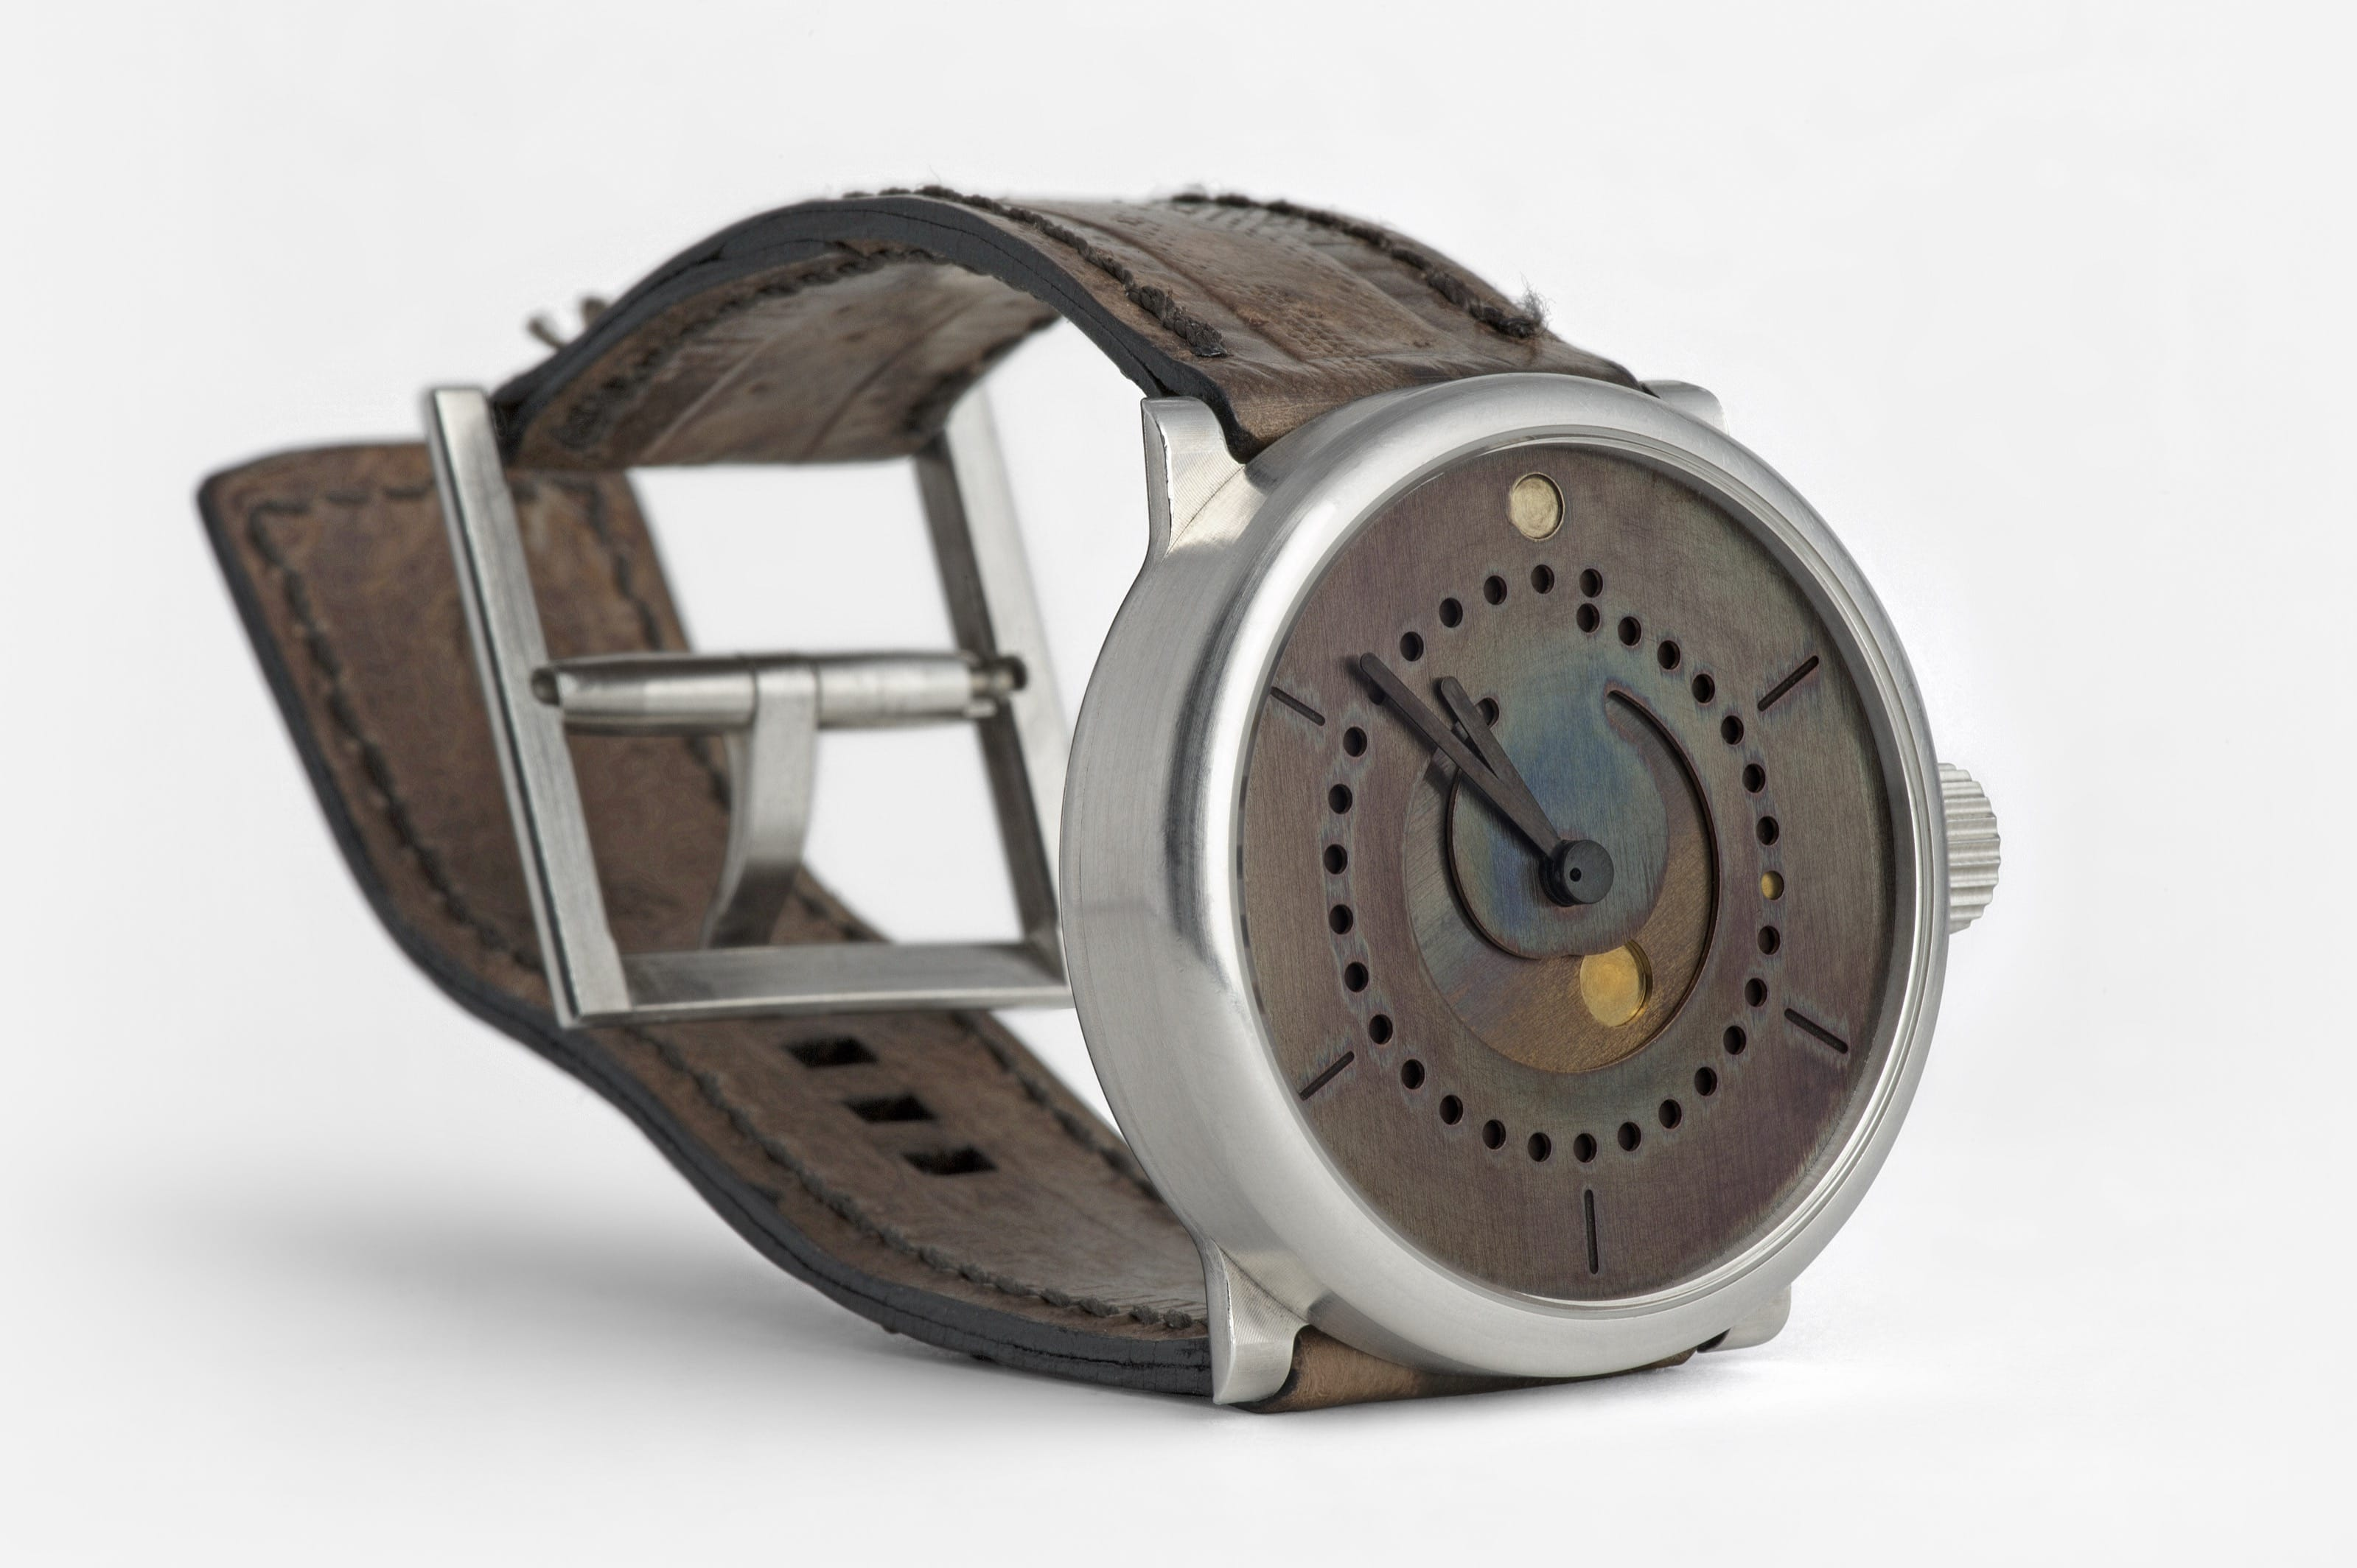 moon phase watch (39mm sterling silver 925 case with art patina dial by ochs und junior, case side)